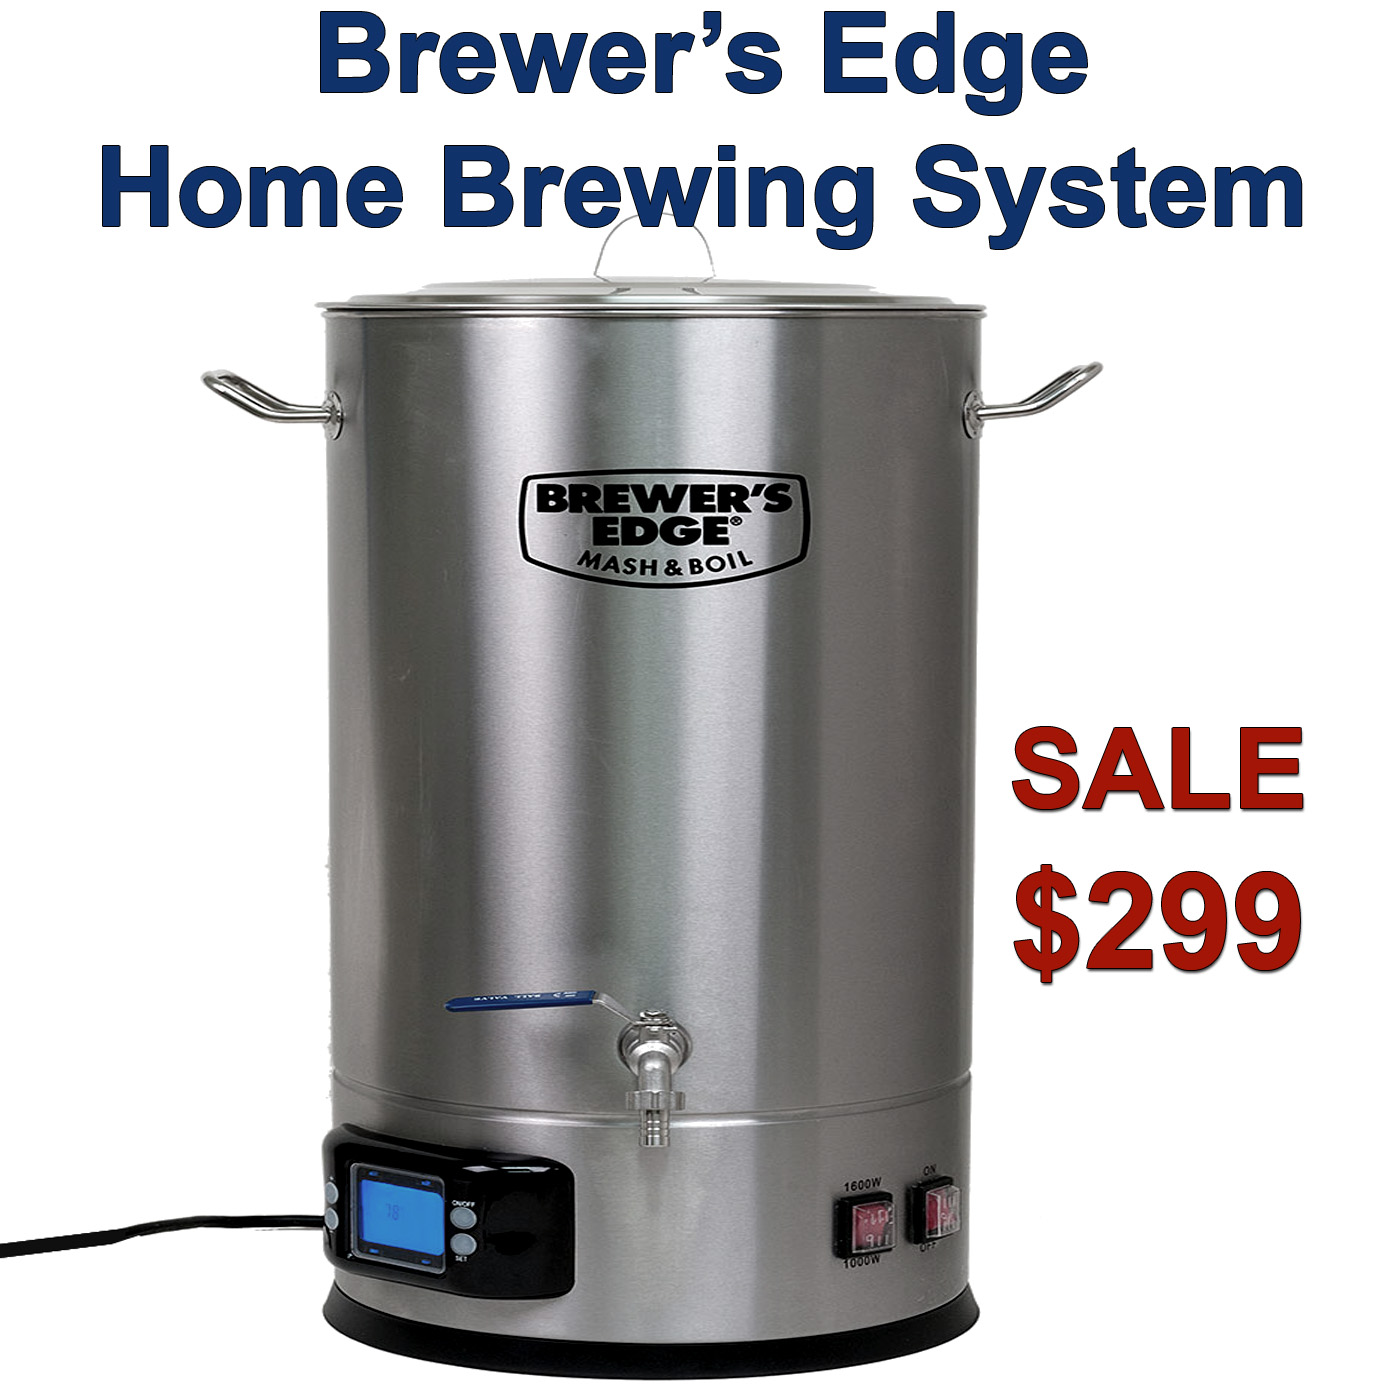 Get a BrewersEdge Homebrewing System Just $299